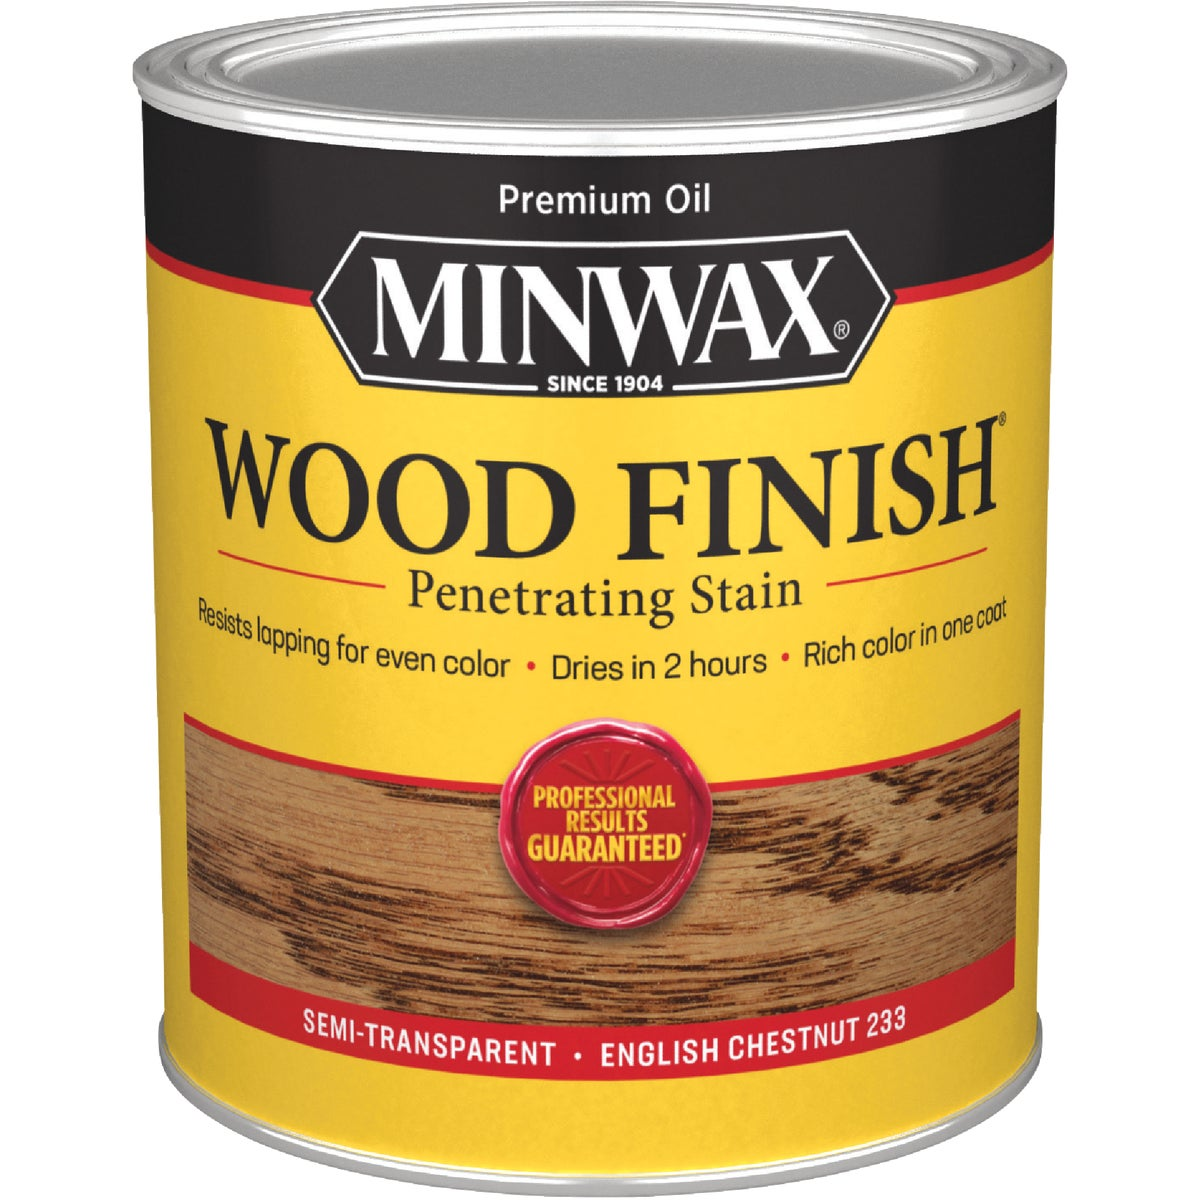 ENGL CHESTNUT WOOD STAIN - 70044 by Minwax Company